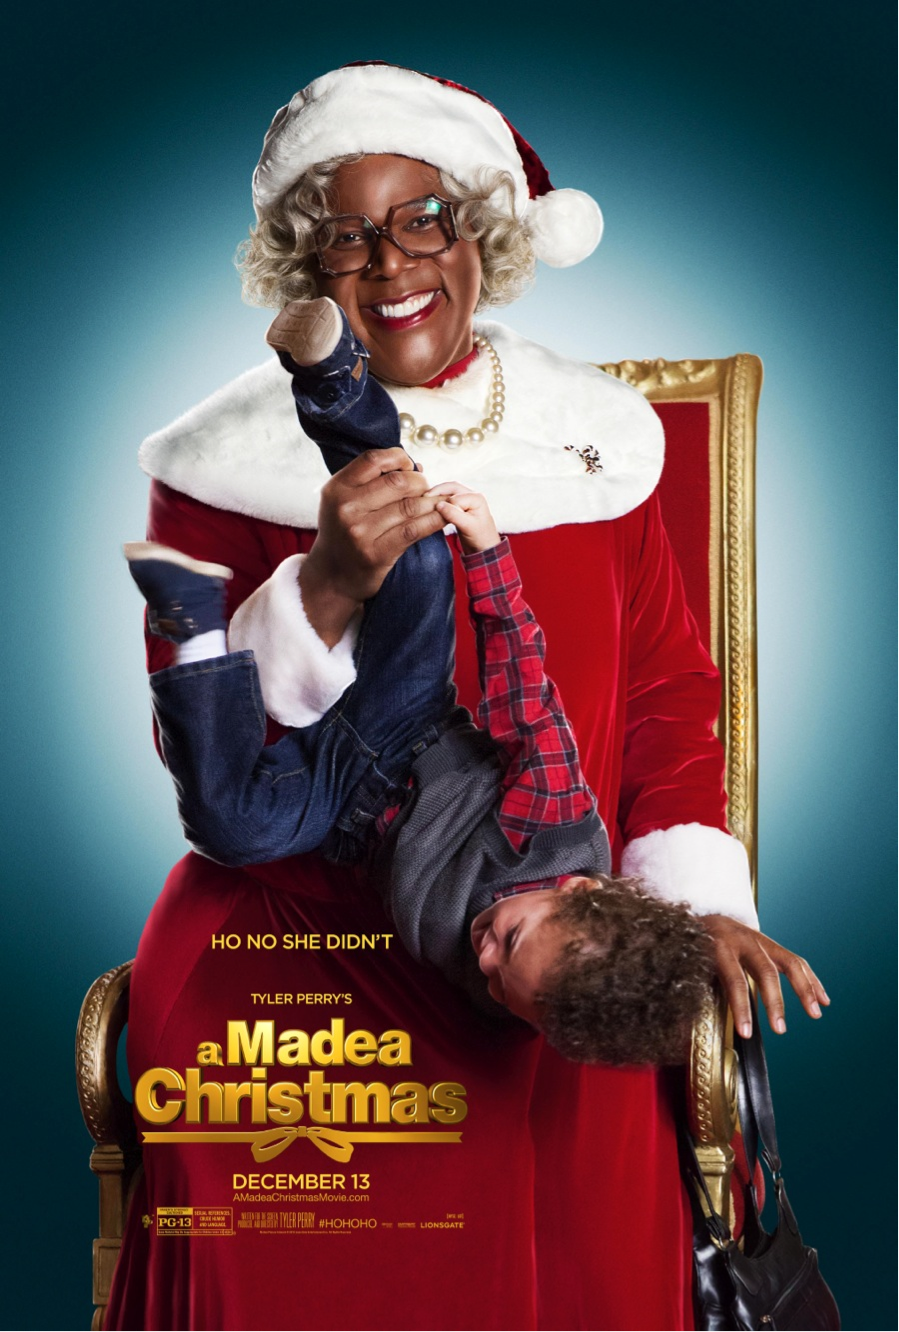 ho no she didnt new teaser poster for tyler perrys a madea christmas starts december 13 hohoho - Madea Christmas Full Movie